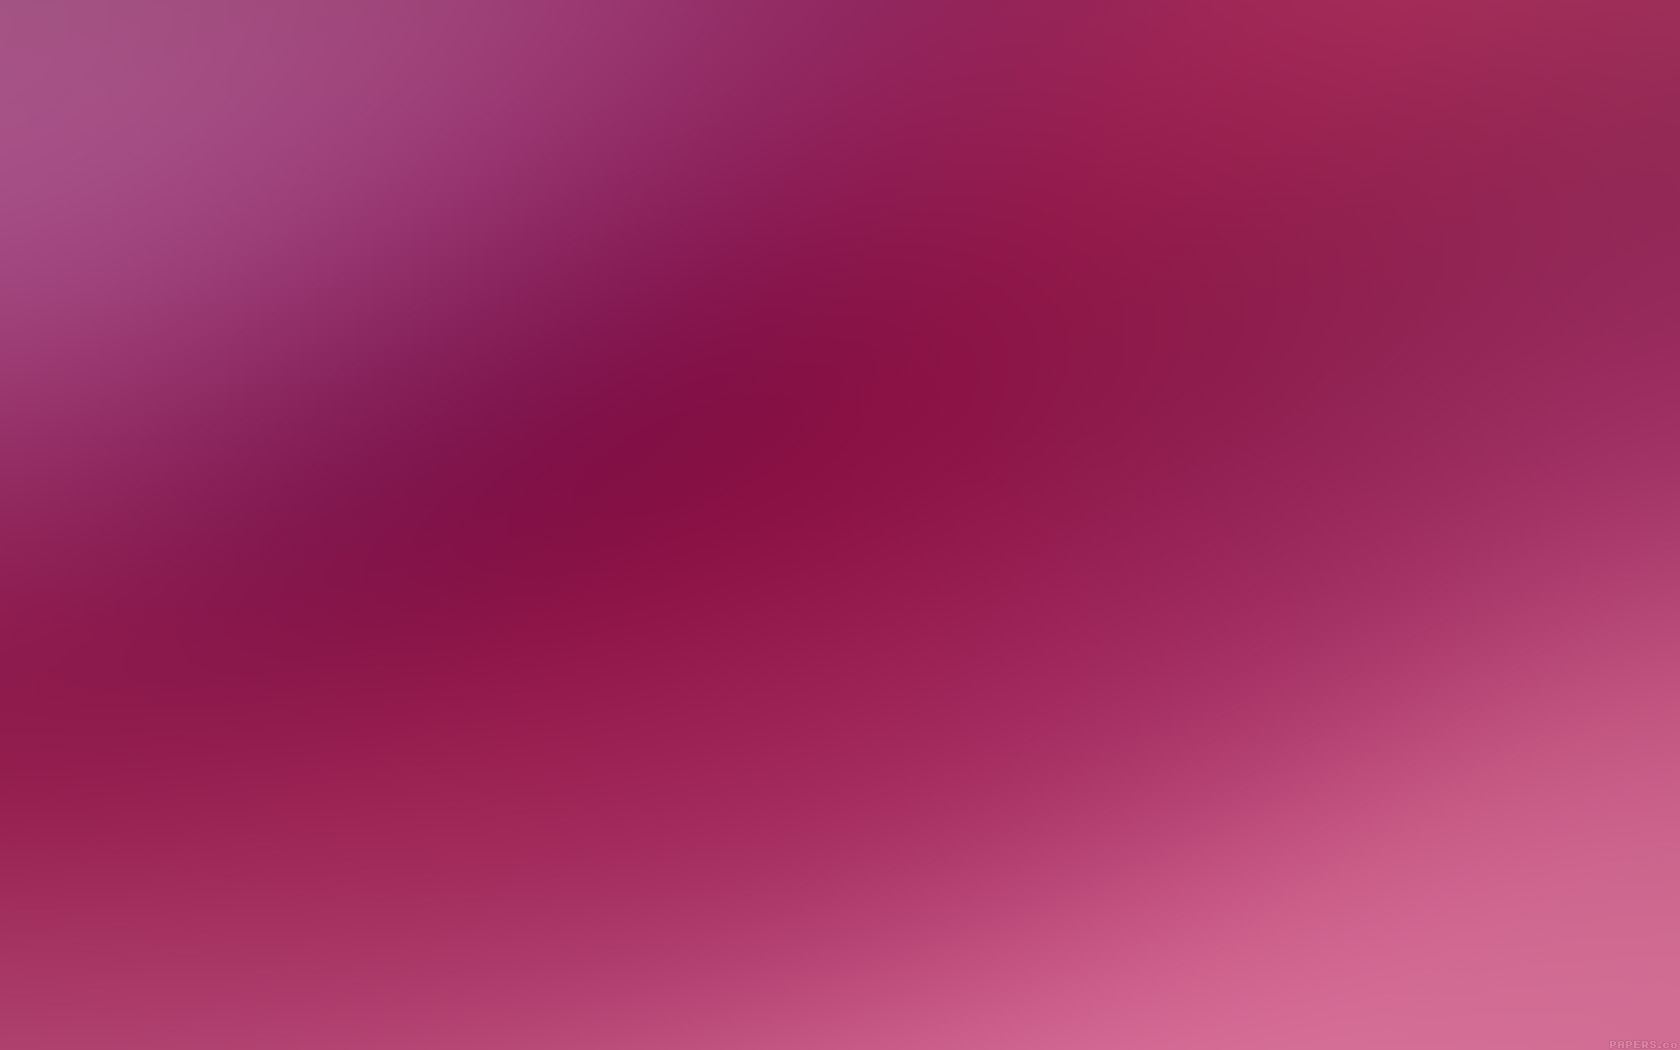 se95-light-hot-pink-red-gradation-blur